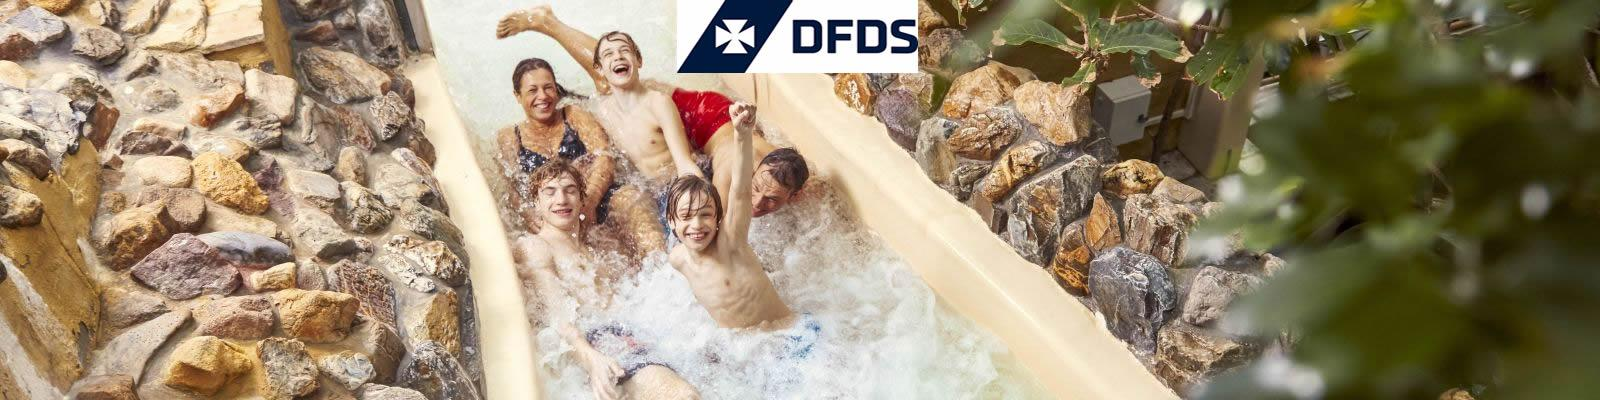 DFDS Wild water river